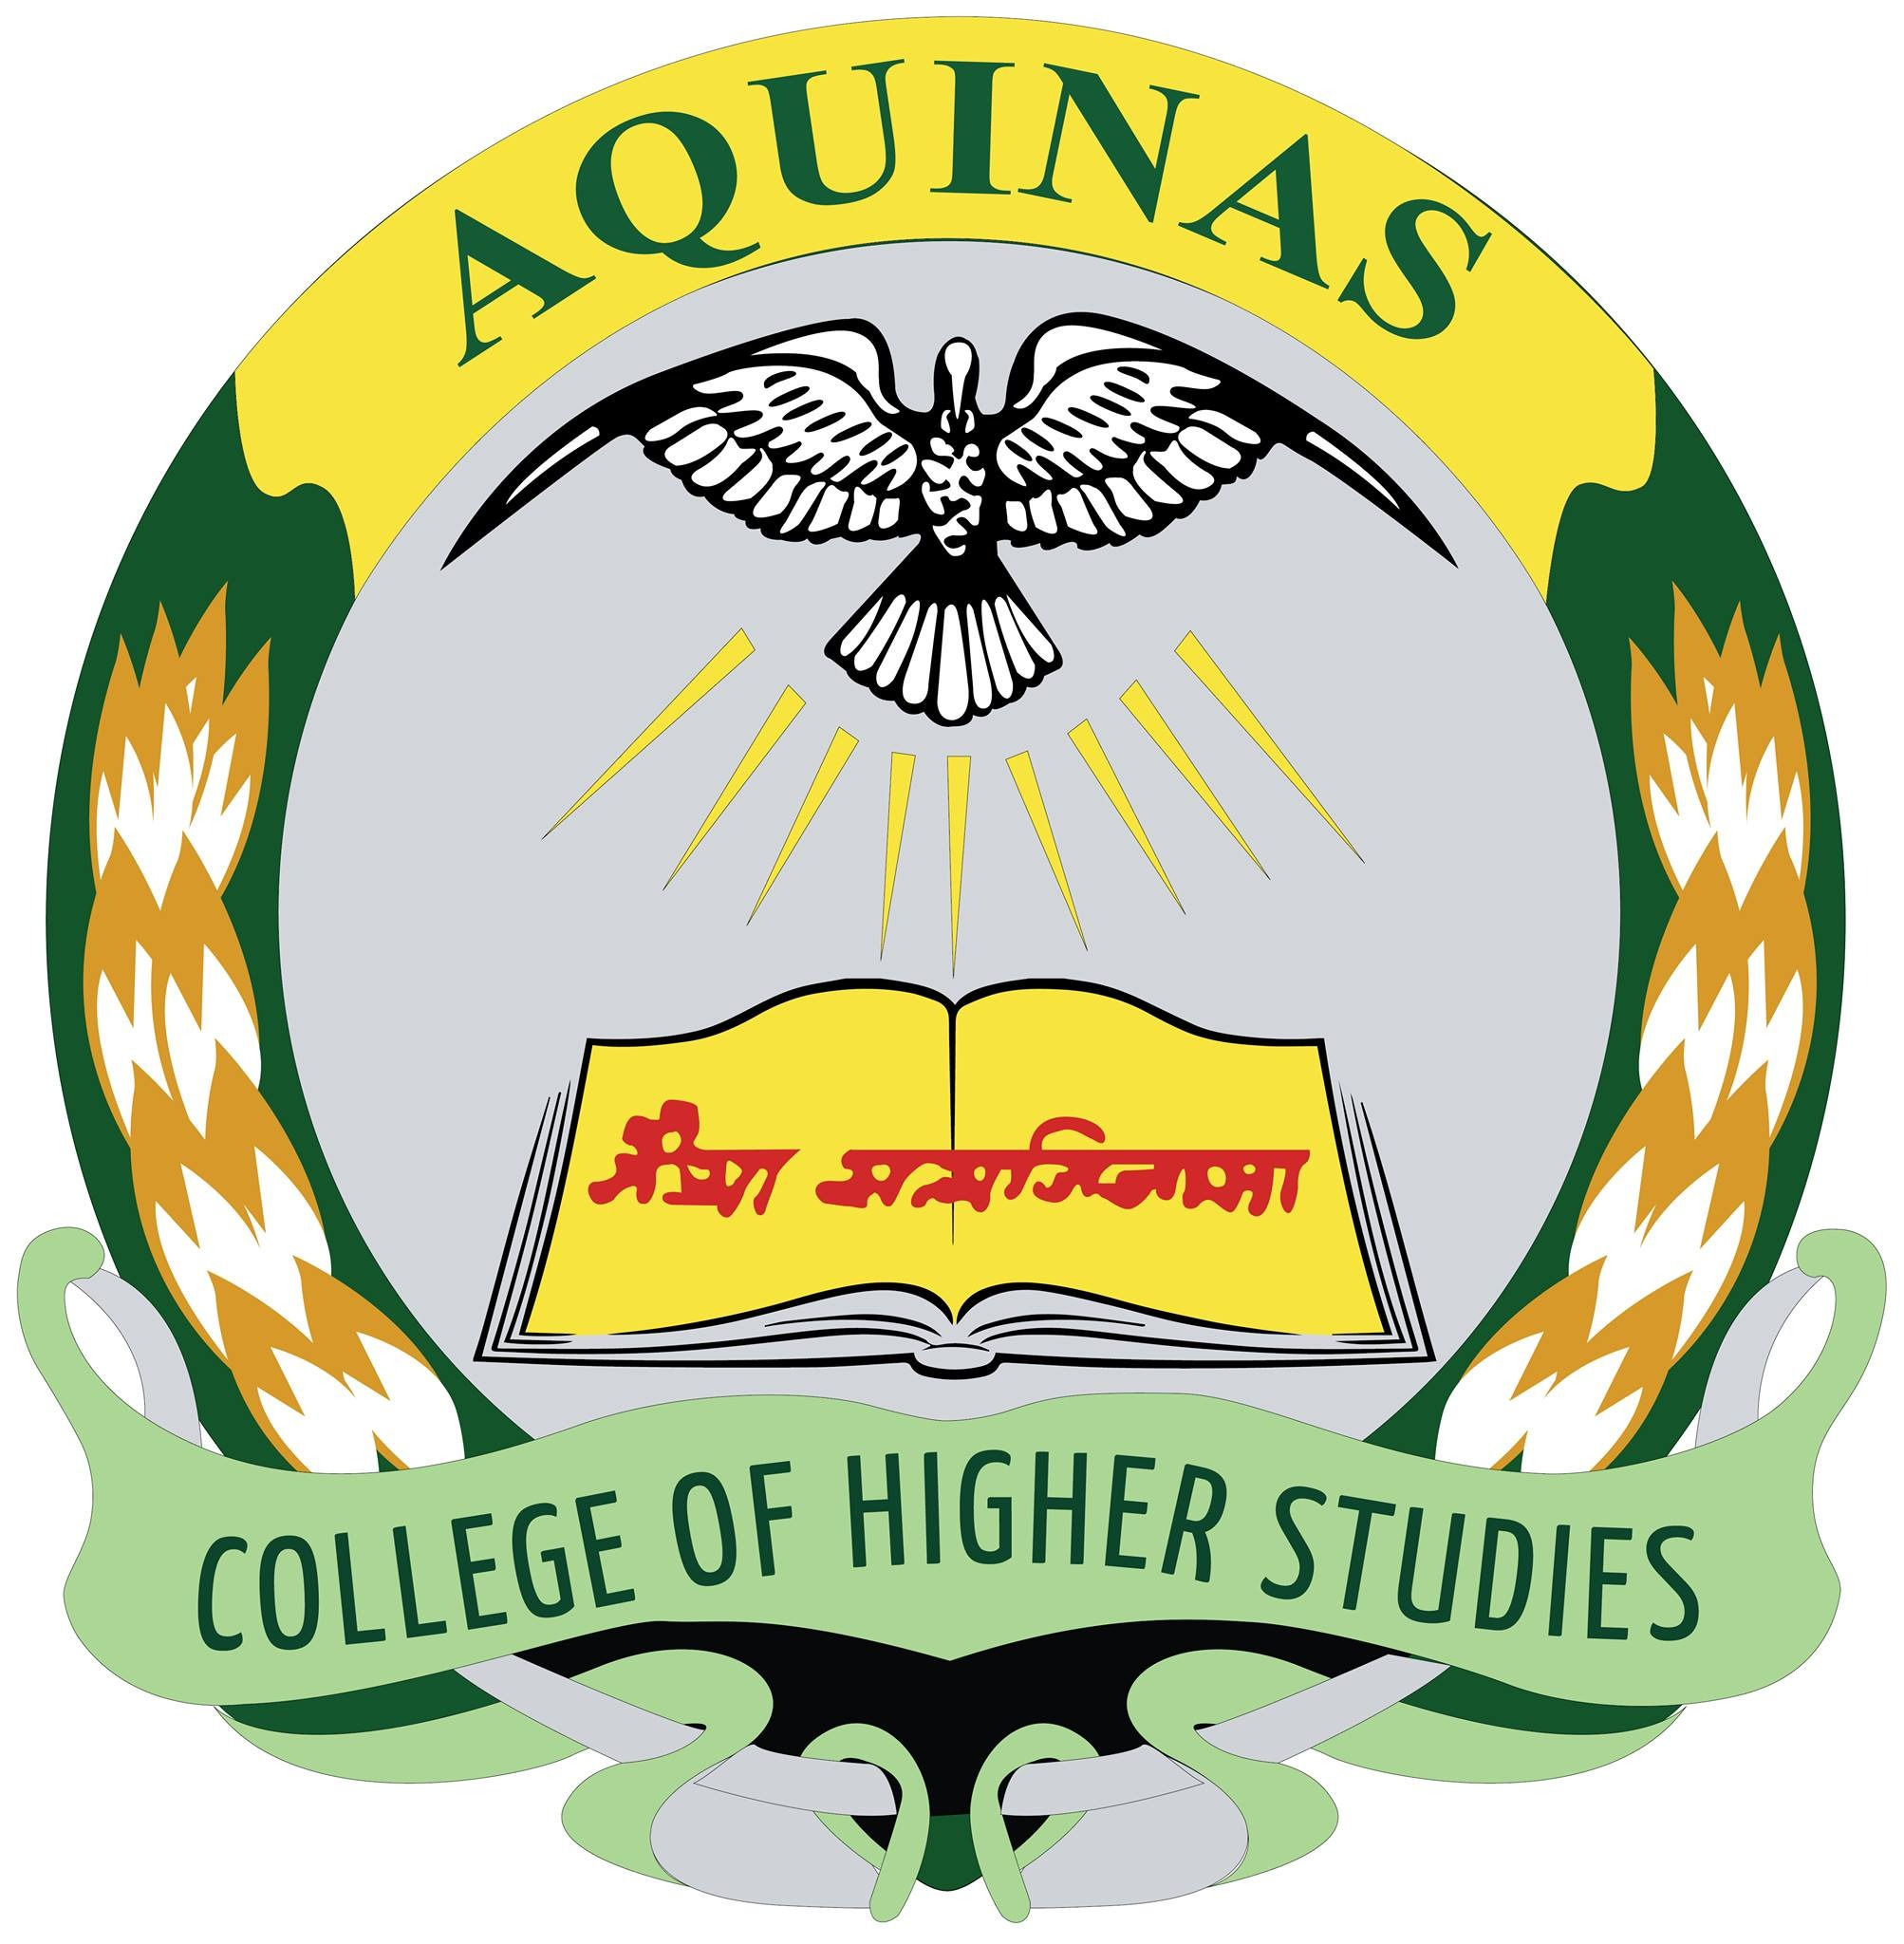 Aquinas College of Higher Studies